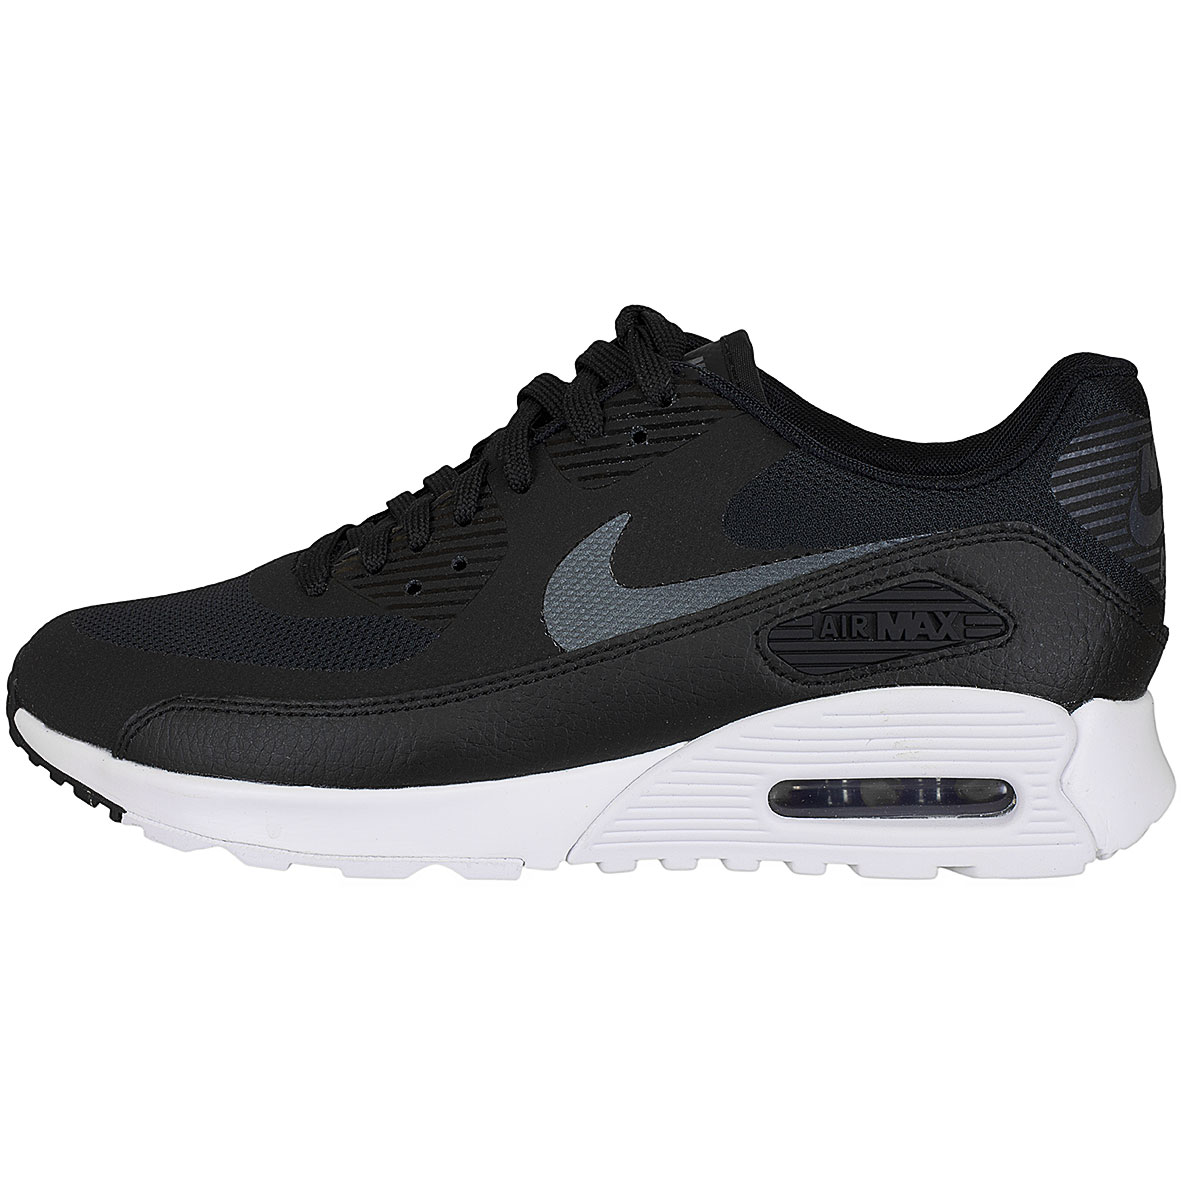 sports shoes 146b8 31d41 ... official store nike damen sneaker air max 90 ultra 2.0 schwarz weiß  c540e 417a5